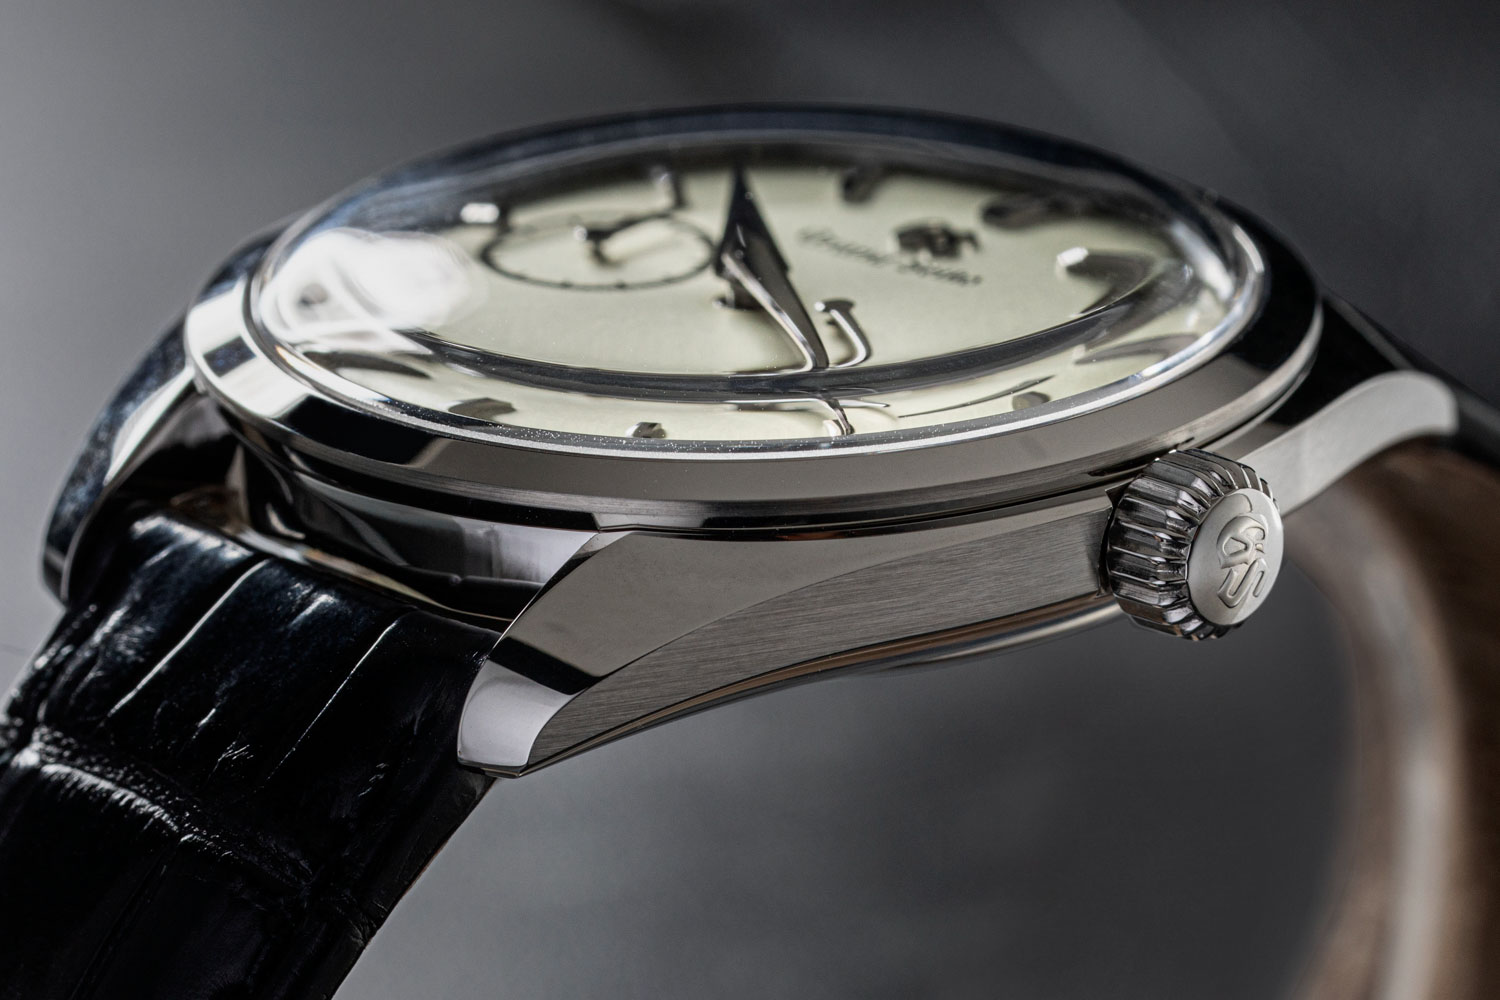 The Grand Seiko SBGK007G has a mirror polished case and bezel, contrasted by an incredible sharp intersection of finish with the brushed surface on the case band (©Revolution)